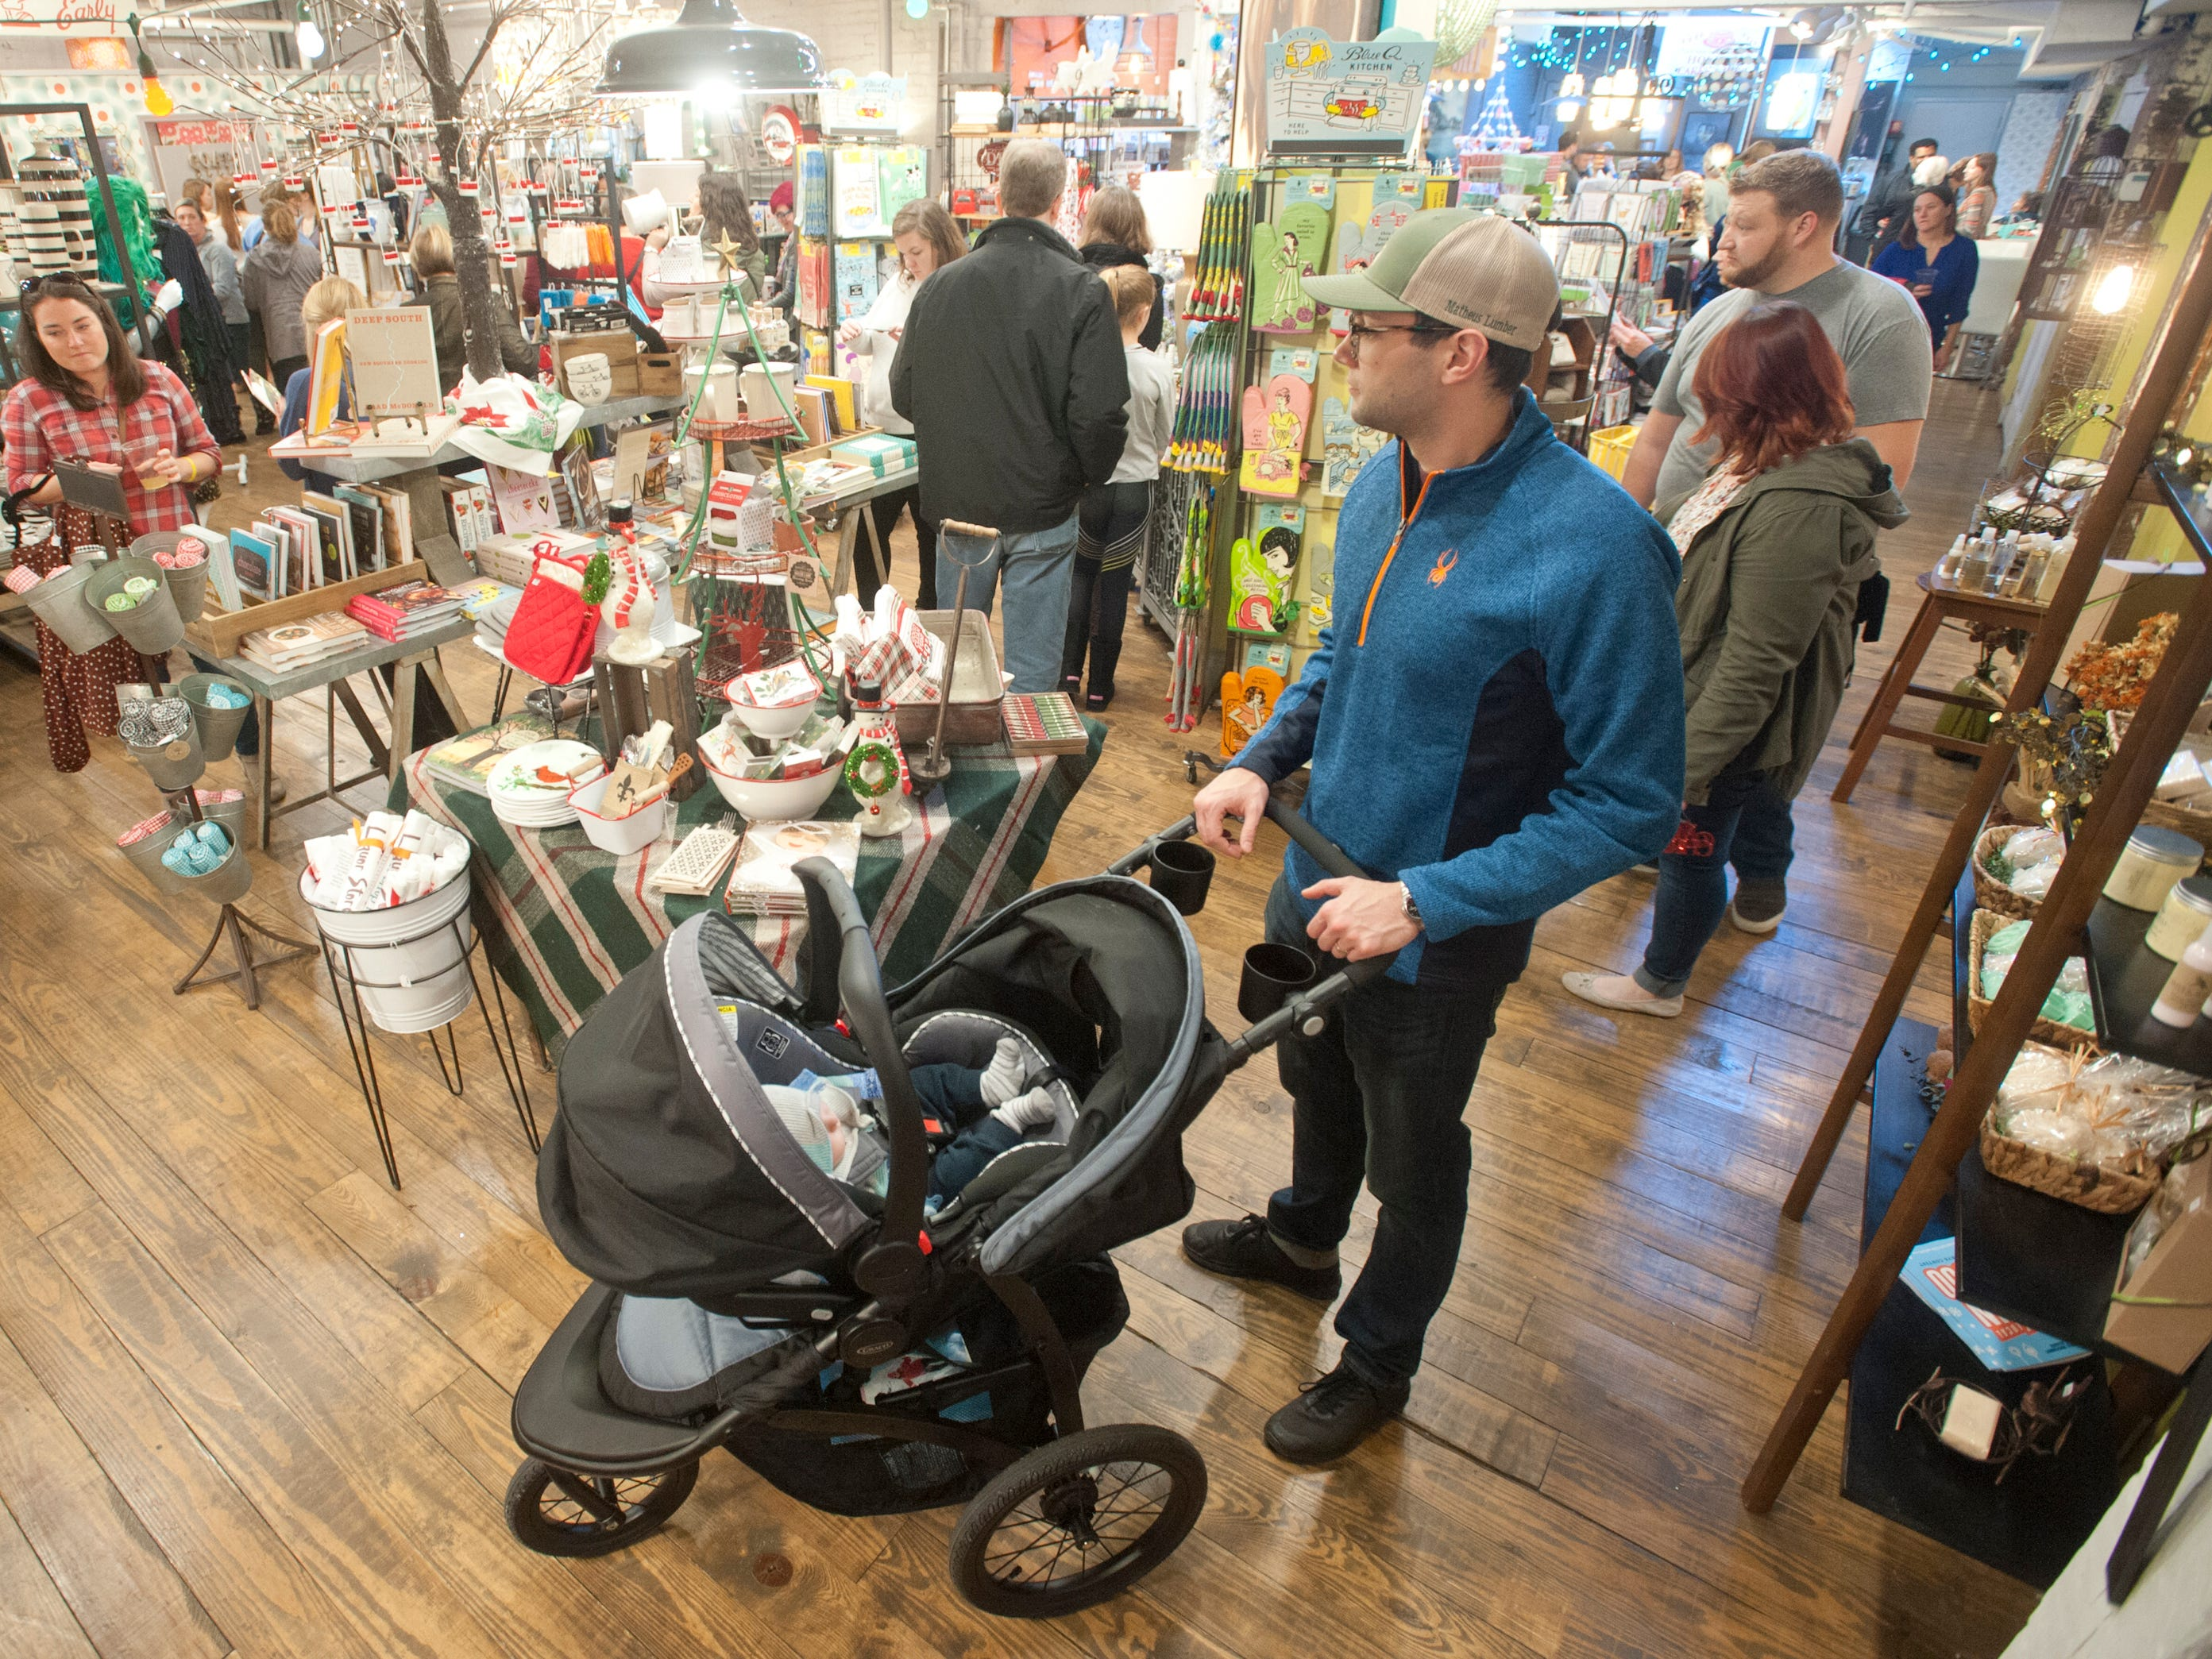 Austin English of the Brownsboro Farms neighborhood, wheels his 3-month old son, Oliver, about in the Work The Metal boutique at 1201 Story Ave. 24 November 2018